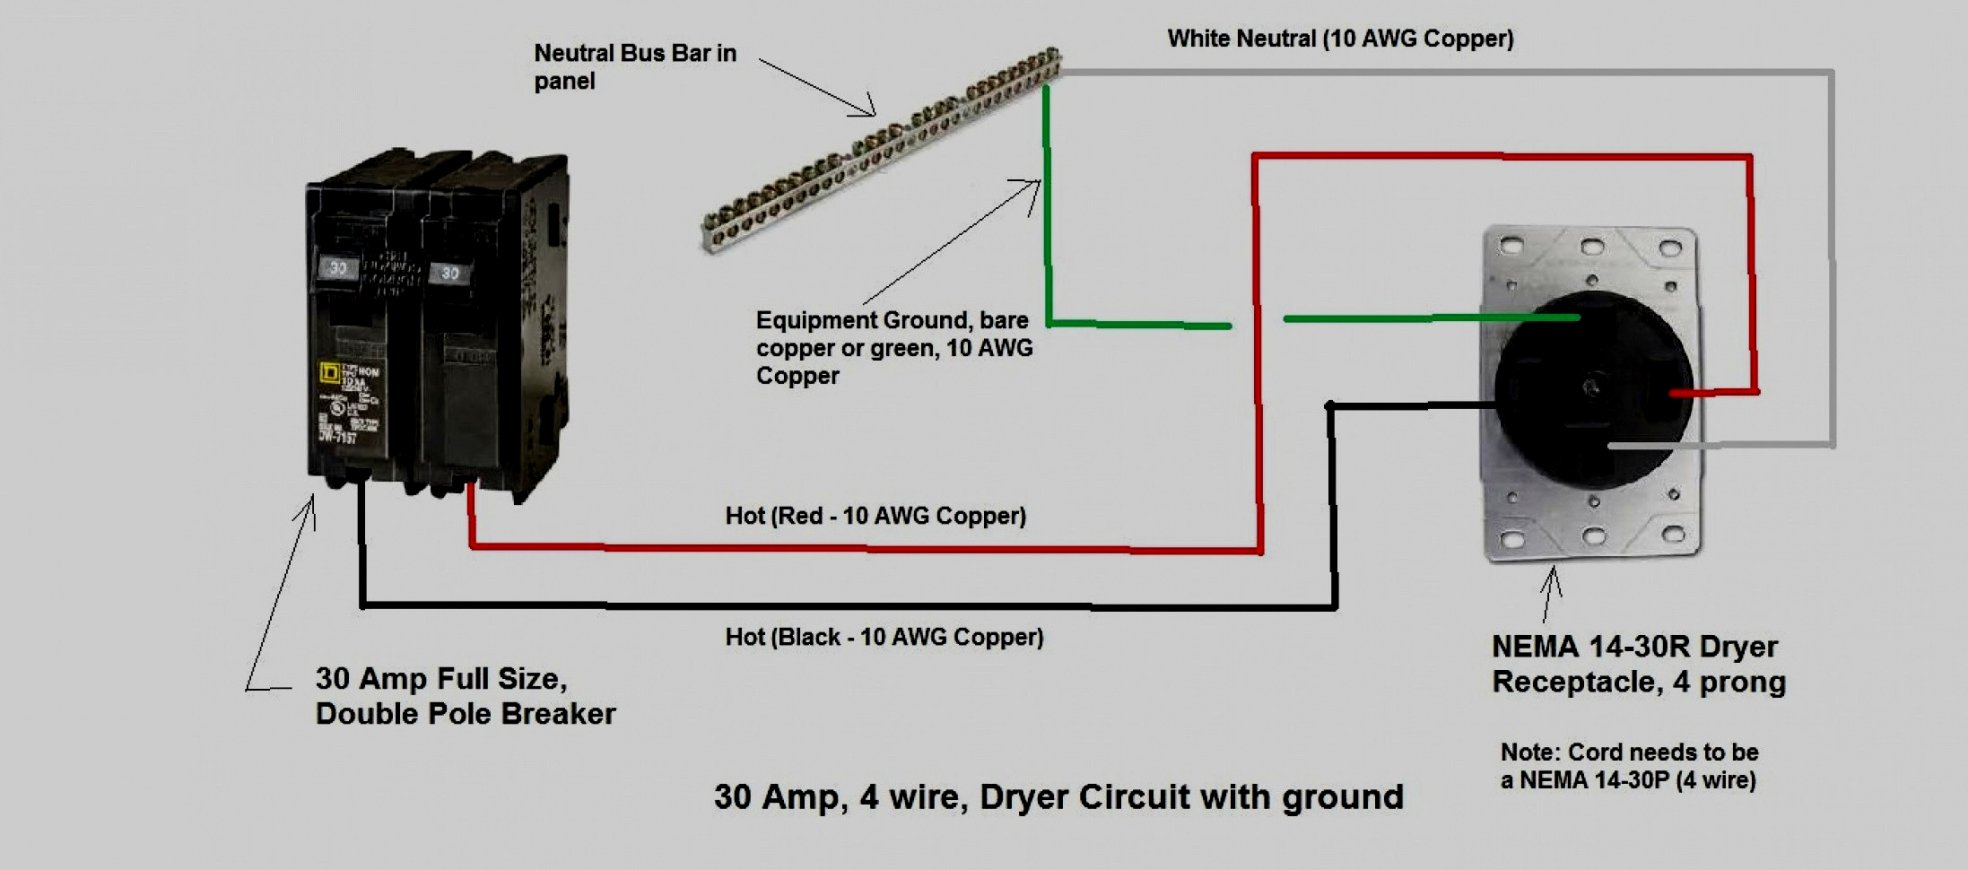 Nema 10 30R 240 Volt 30 Amp Plug Wire Diagrams | Wiring Diagram - 240 Volt Plug Wiring Diagram